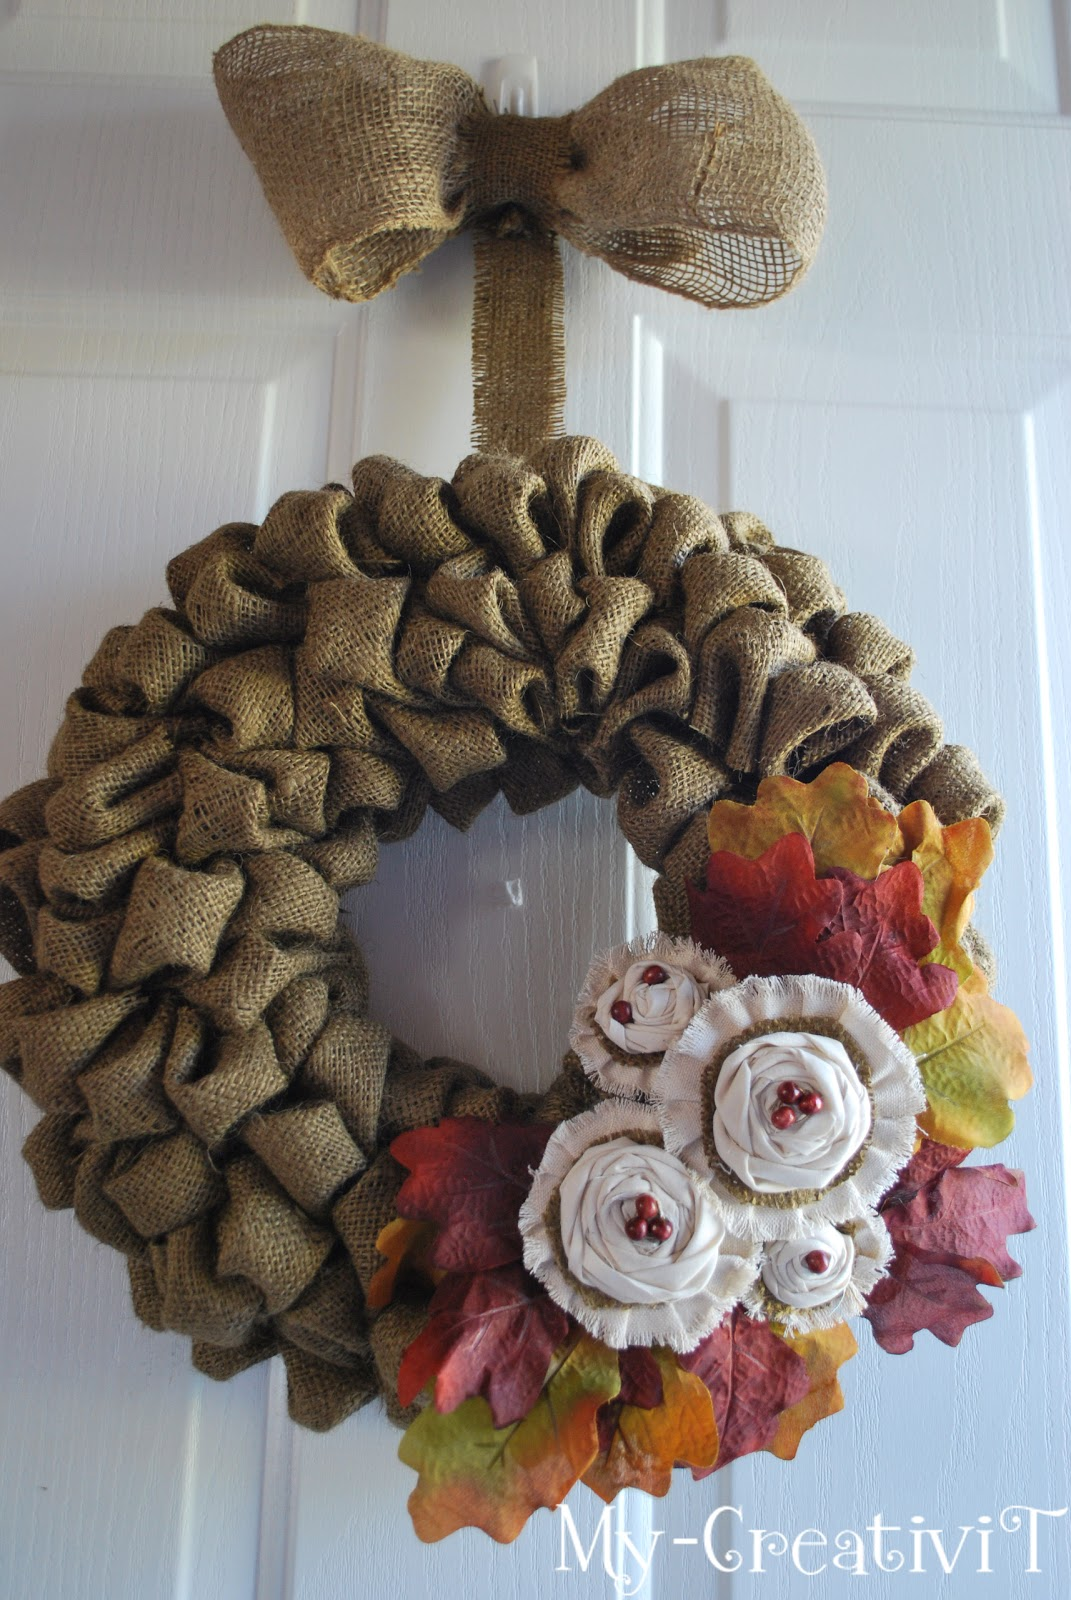 My creativit diy burlap wreath for Diy jute